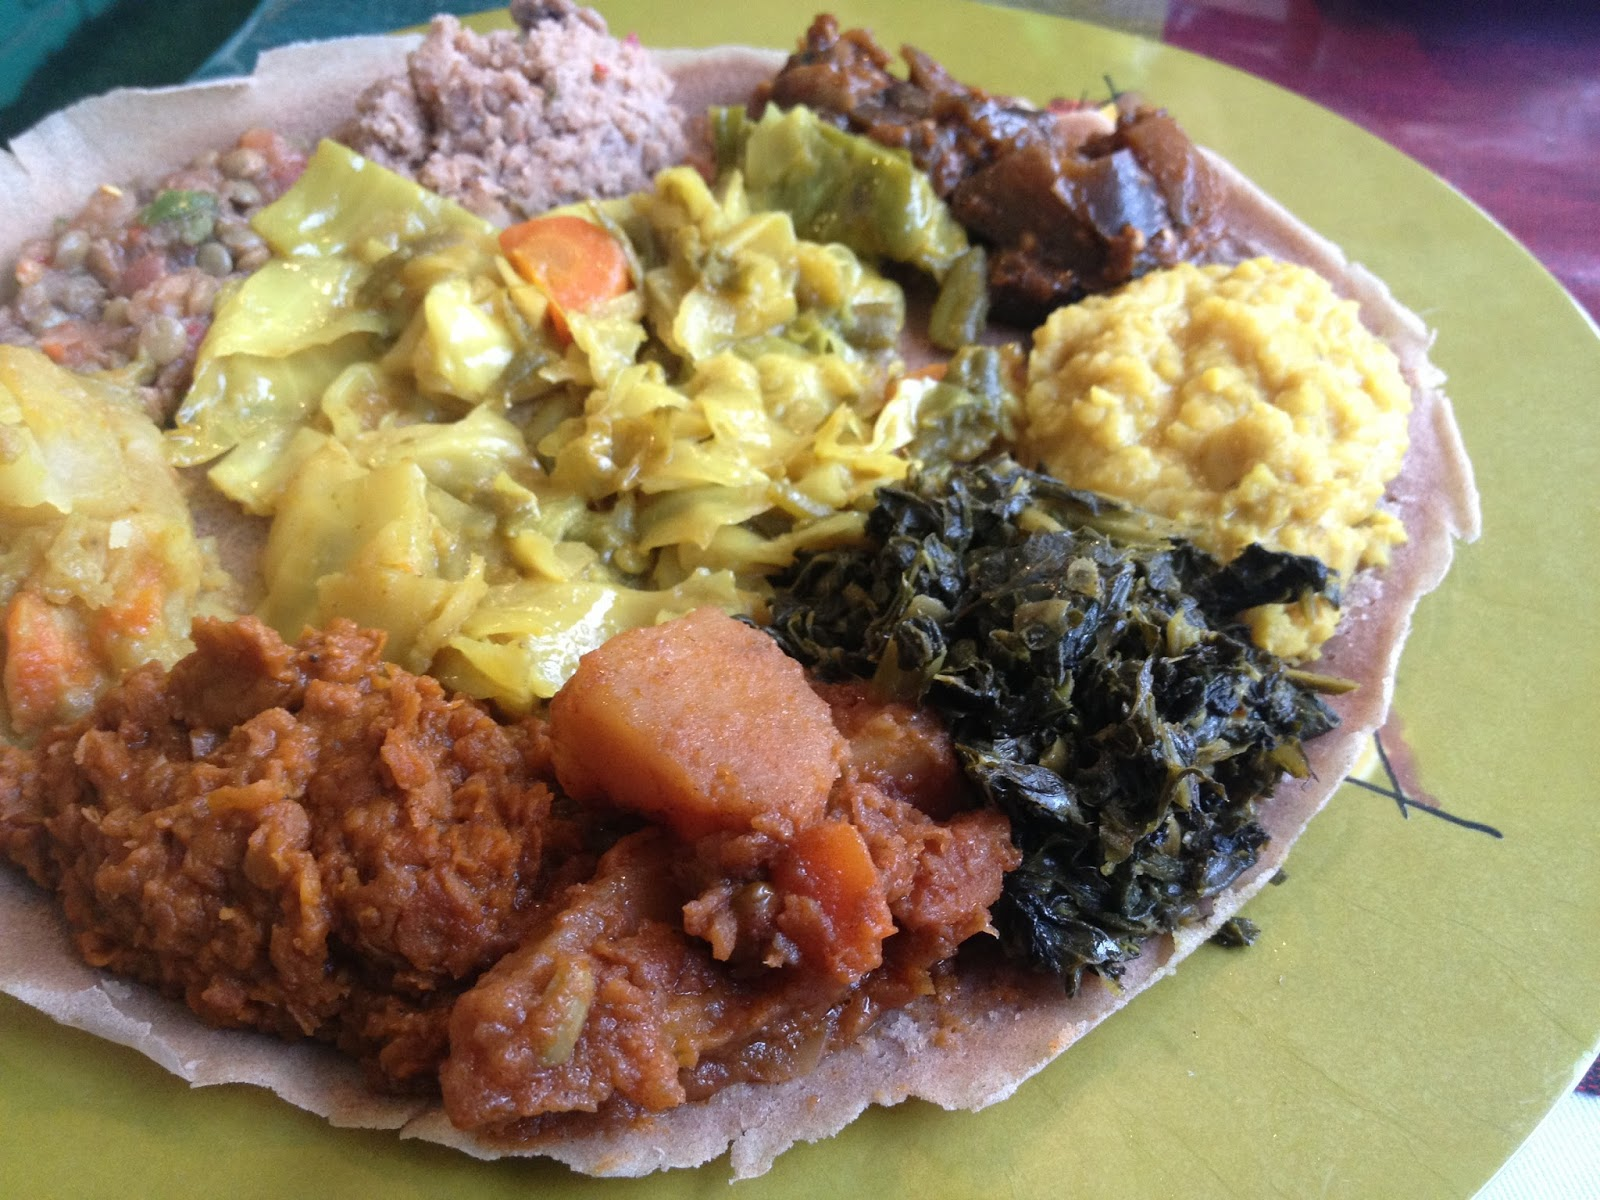 Because Of This Propensity For Ethiopian Food Tourism I Stopped At Aster S Restaurant When Was In Austin Traveling With Fellow Fans